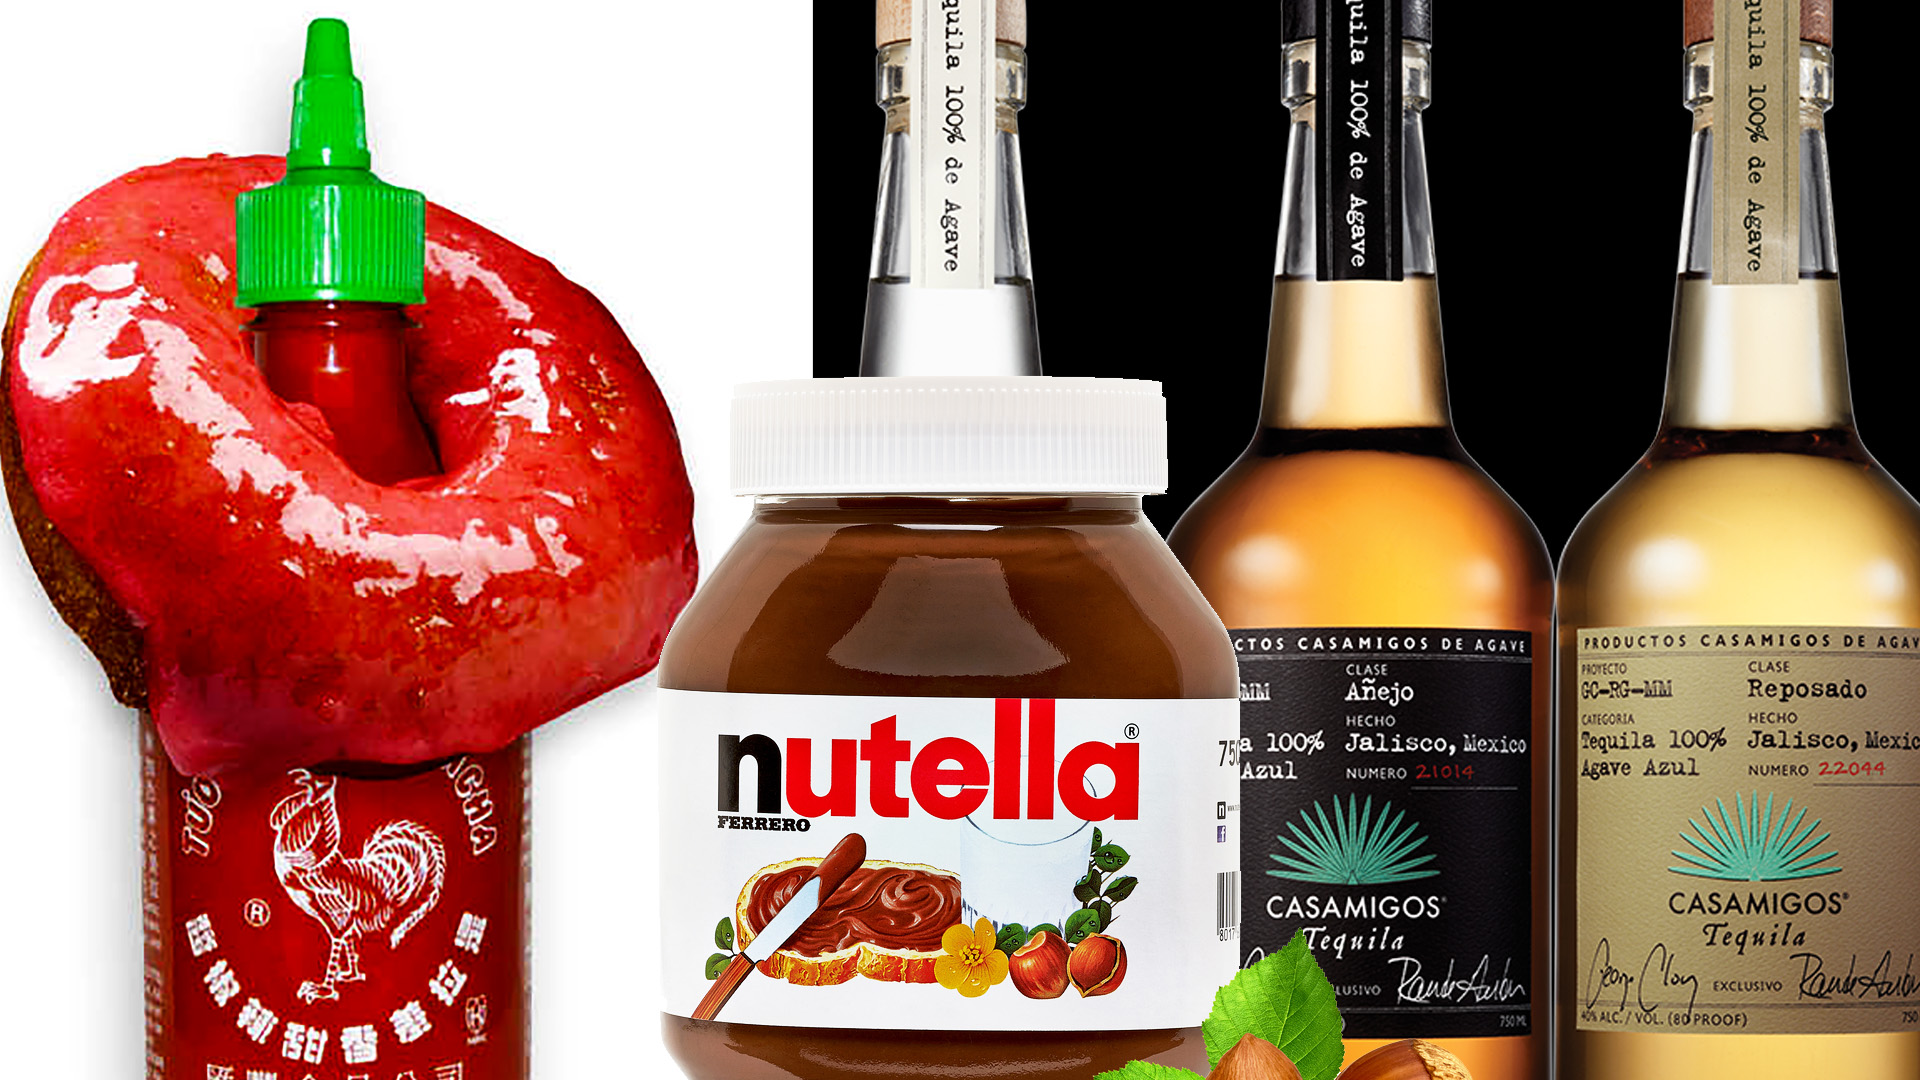 Food News Roundup: Get George Clooney's Tequila, Harlem Gets Sriracha Donut